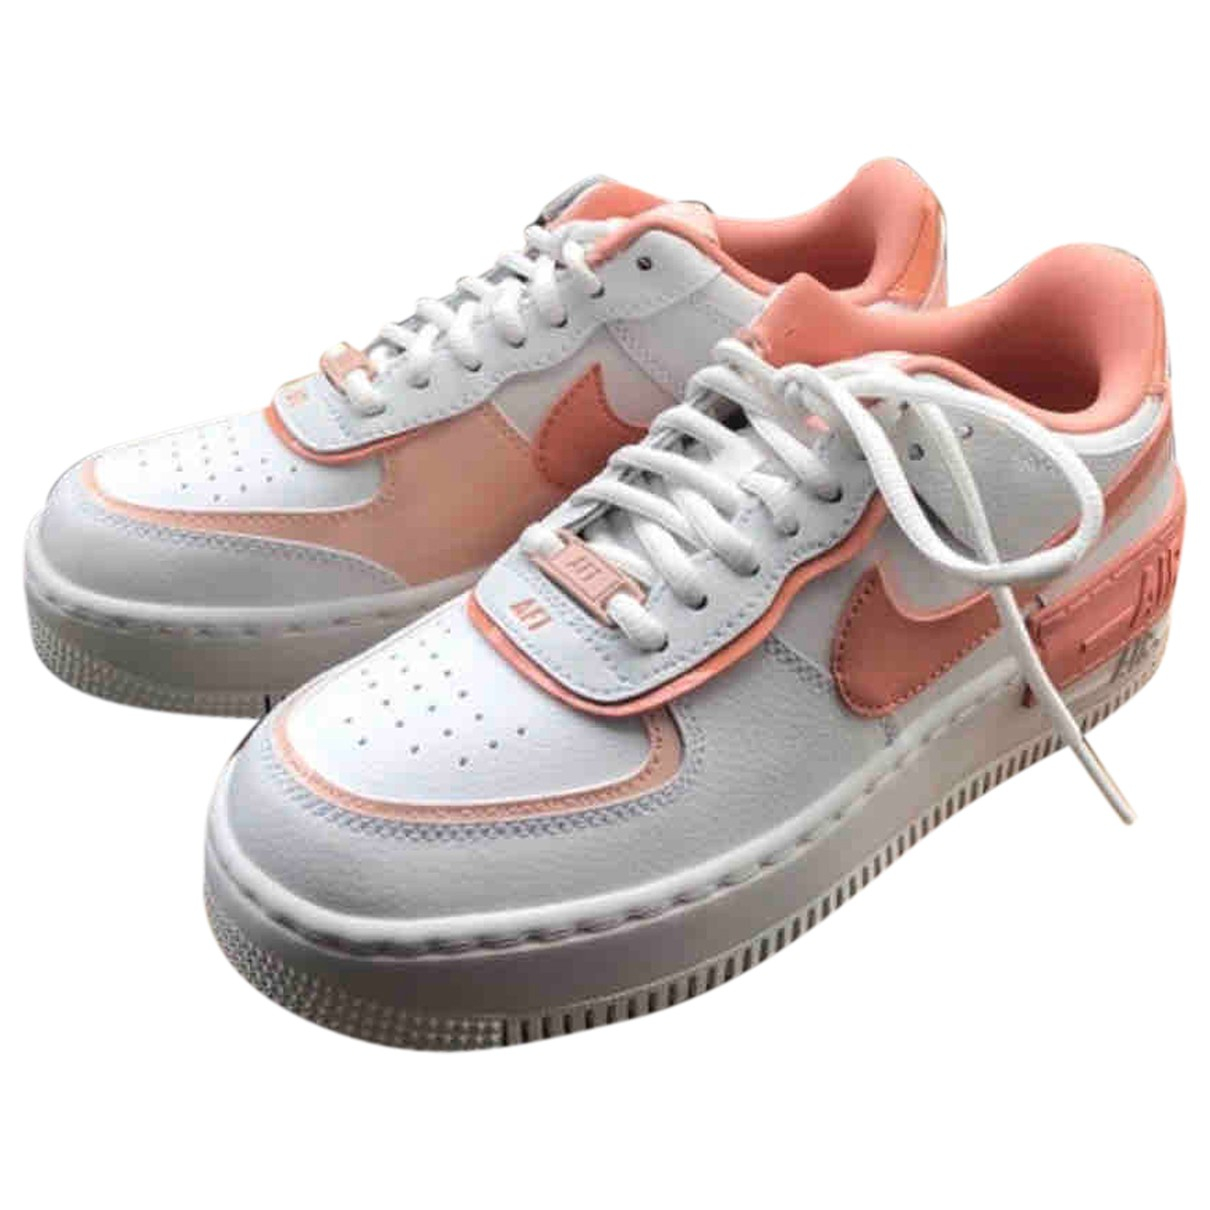 Nike Air Force 1 Pink Rubber Trainers for Women 37.5 EU